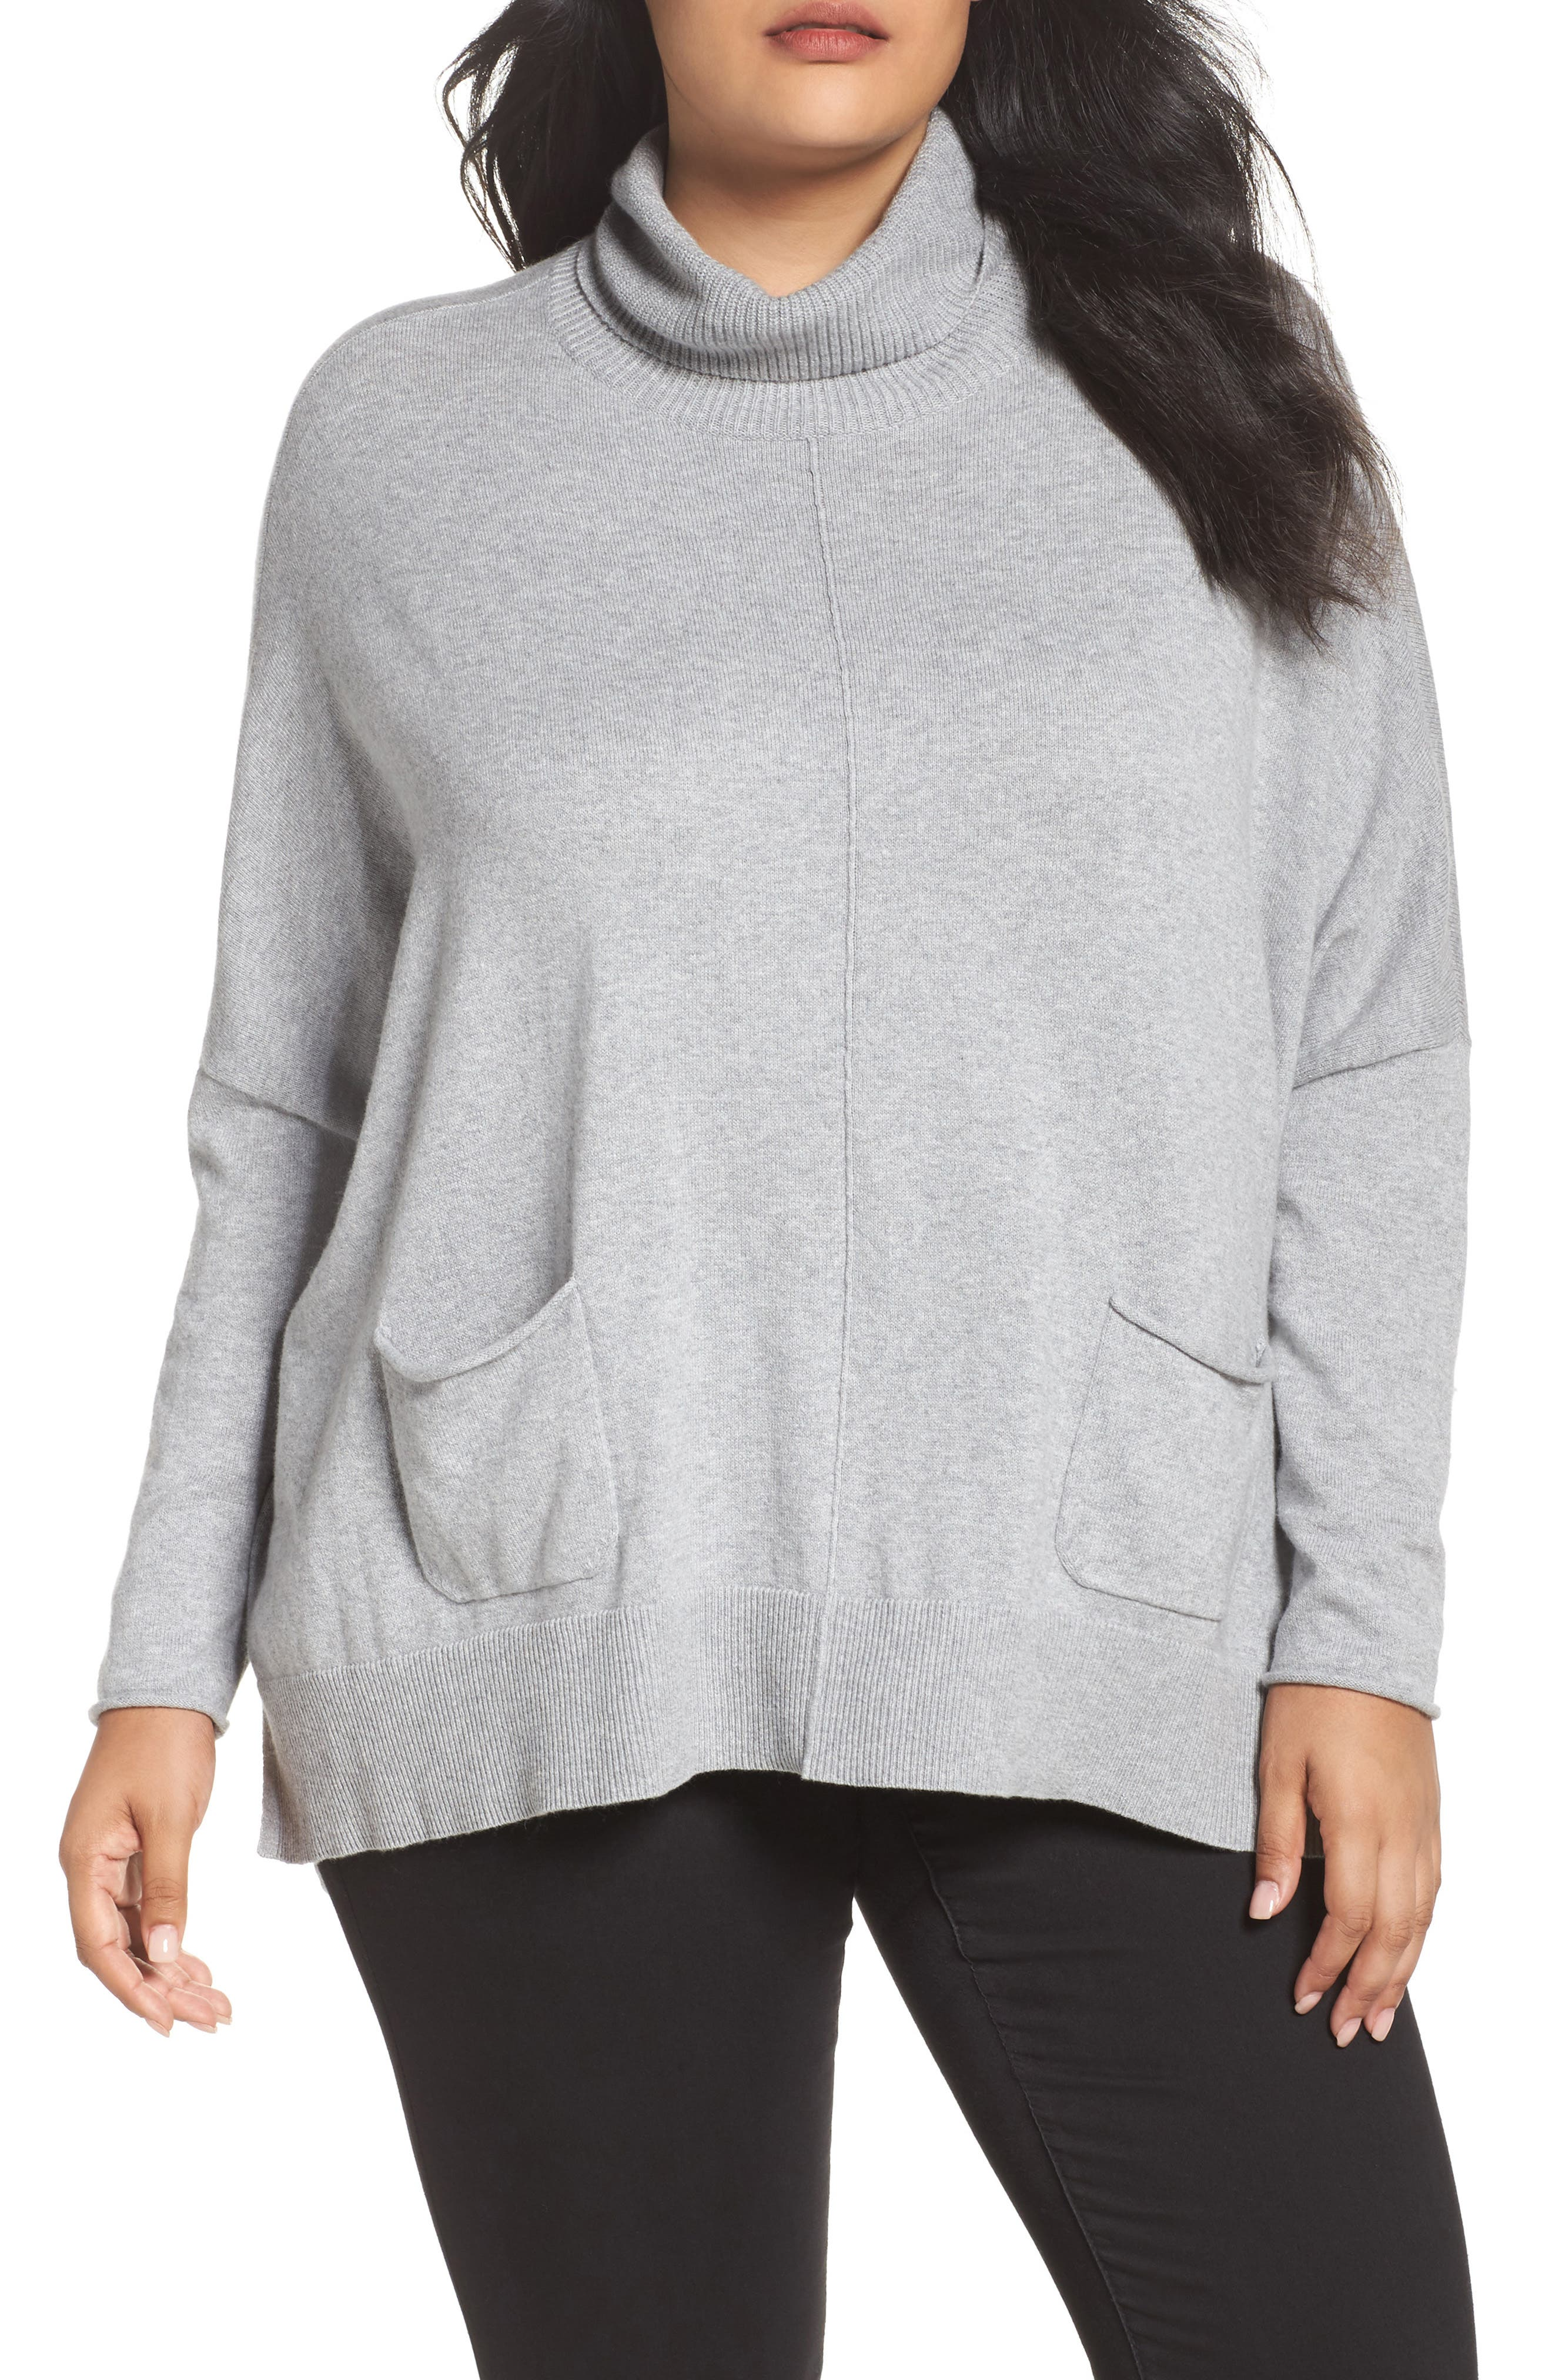 Relaxed Cotton & Cashmere Sweater,                         Main,                         color, Grey Heather